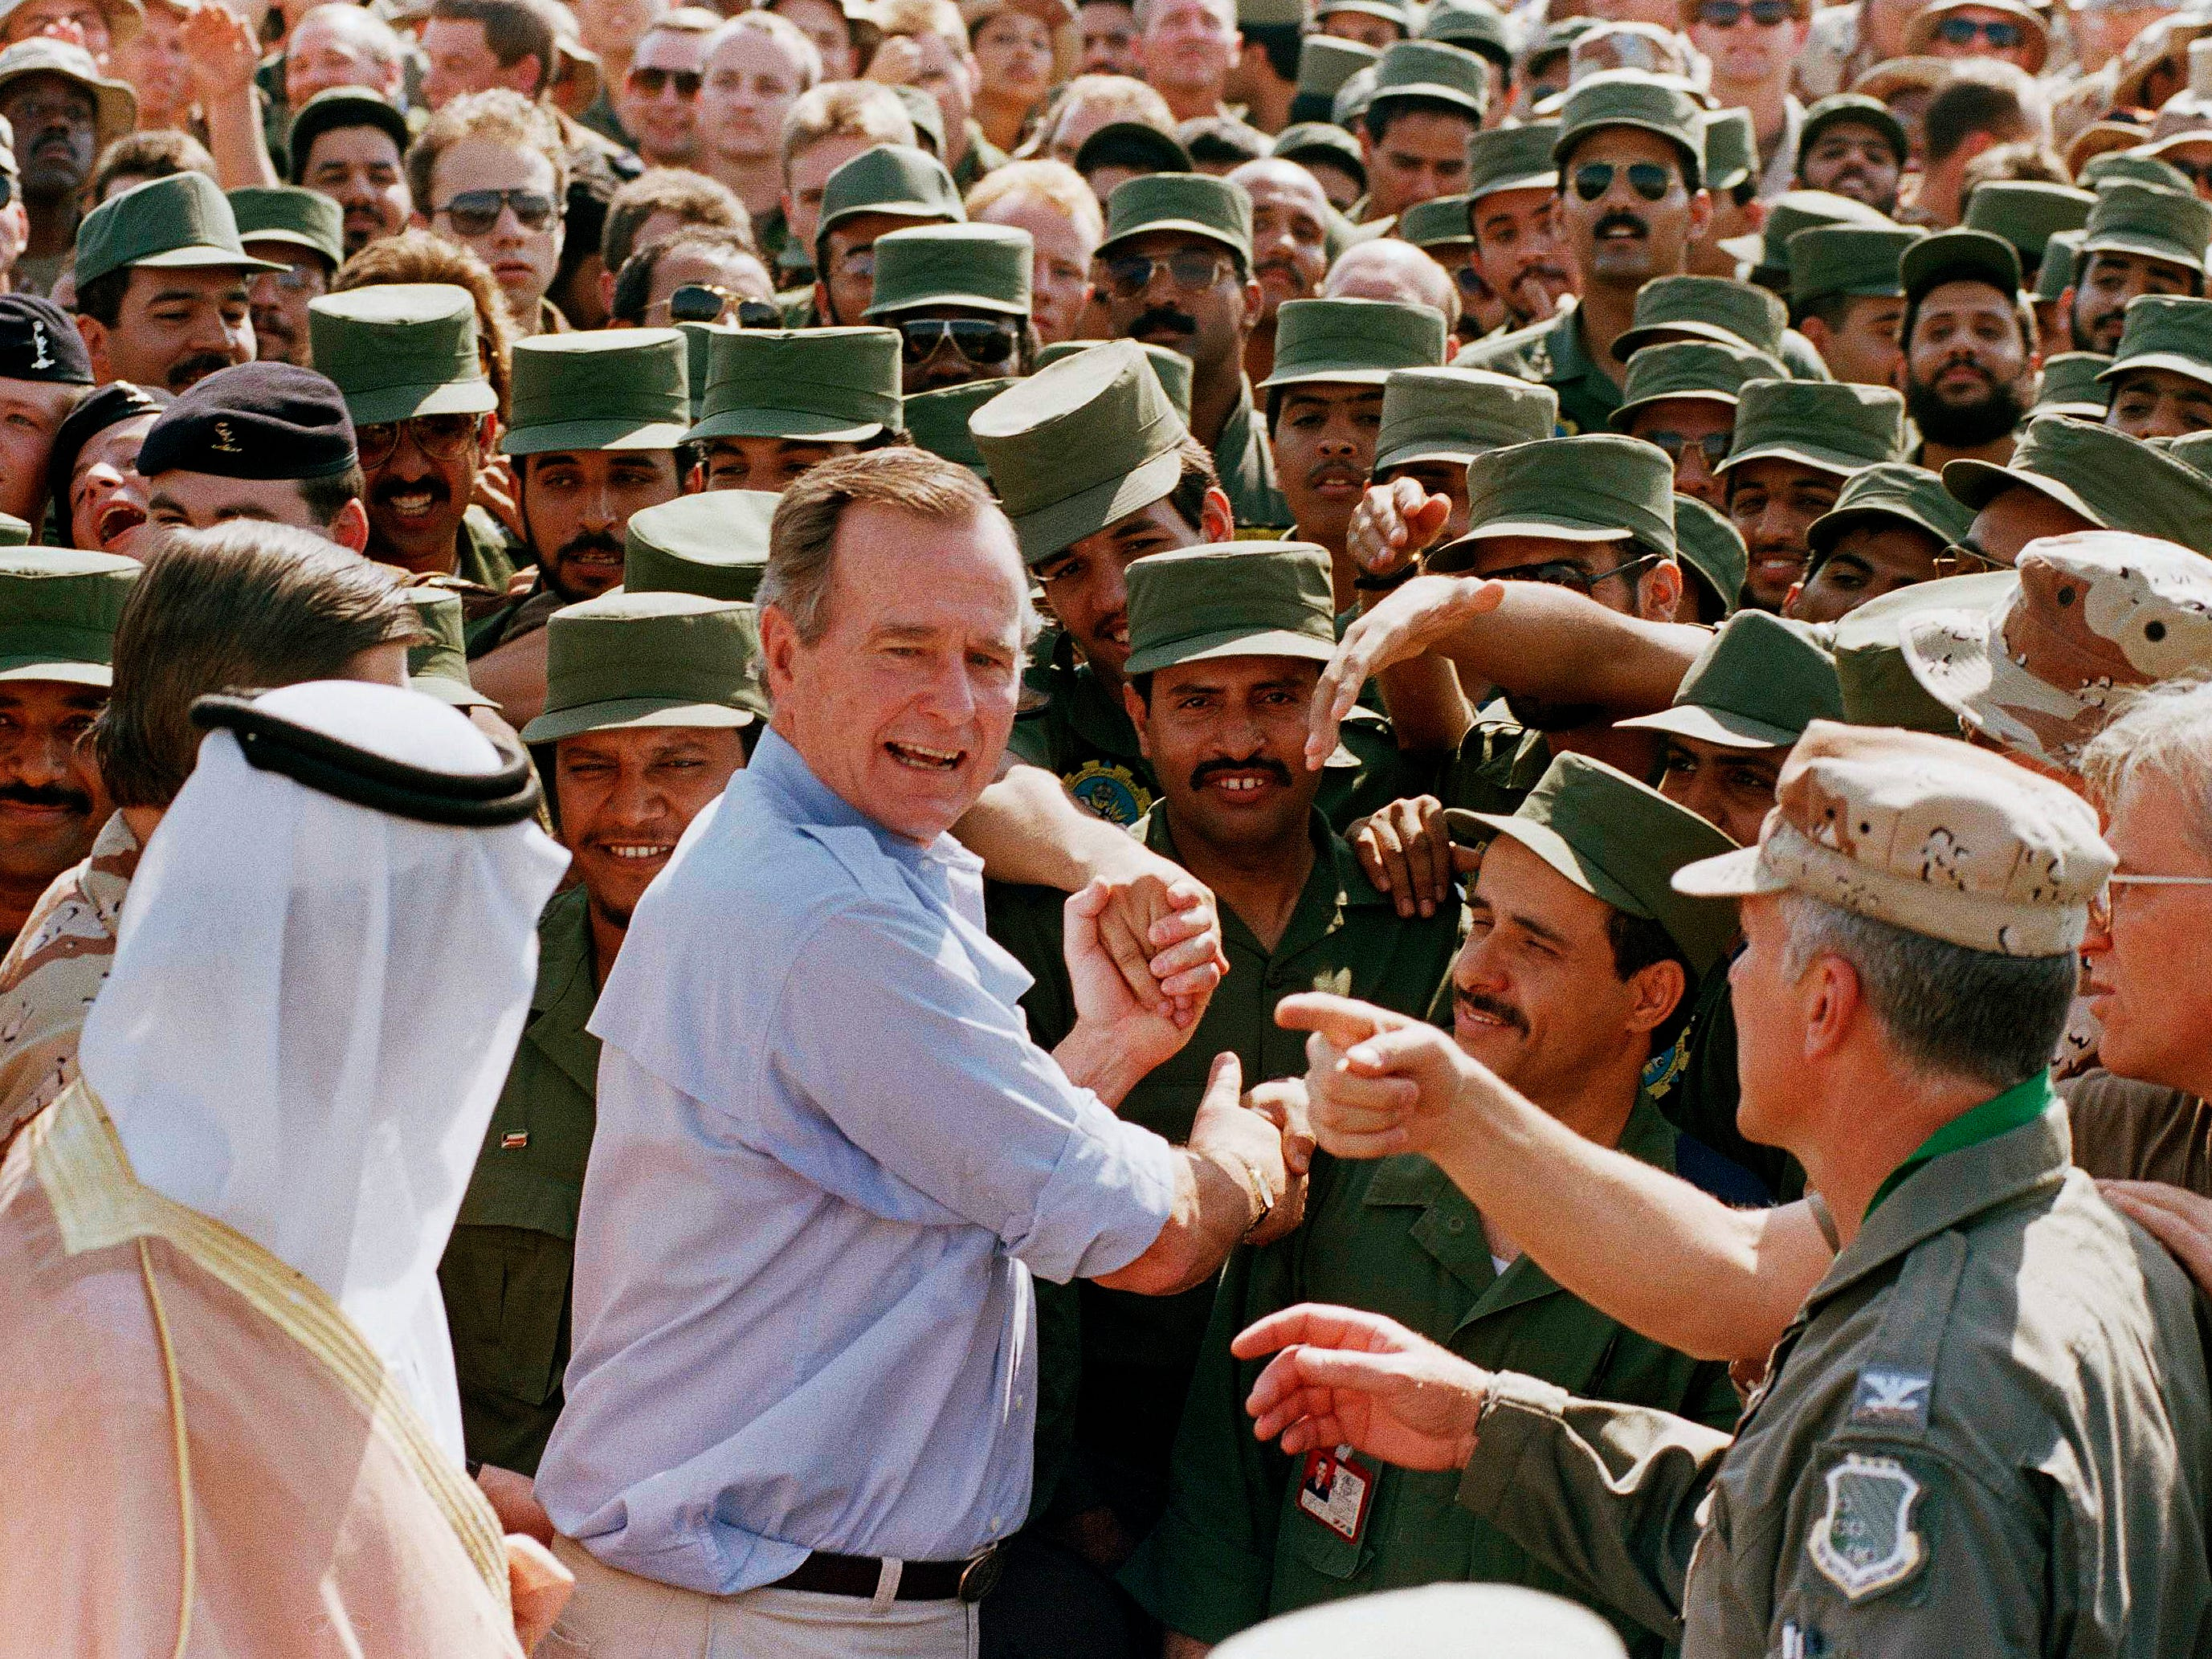 President George H.W. Bush is greeted by Saudi troops and others as he arrives in Dhahran, Saudi Arabia, on Nov. 22, 1990,  for a Thanksgiving visit. Bush died at the age of 94 on Friday, Nov. 30, 2018, about eight months after the death of his wife, Barbara Bush.